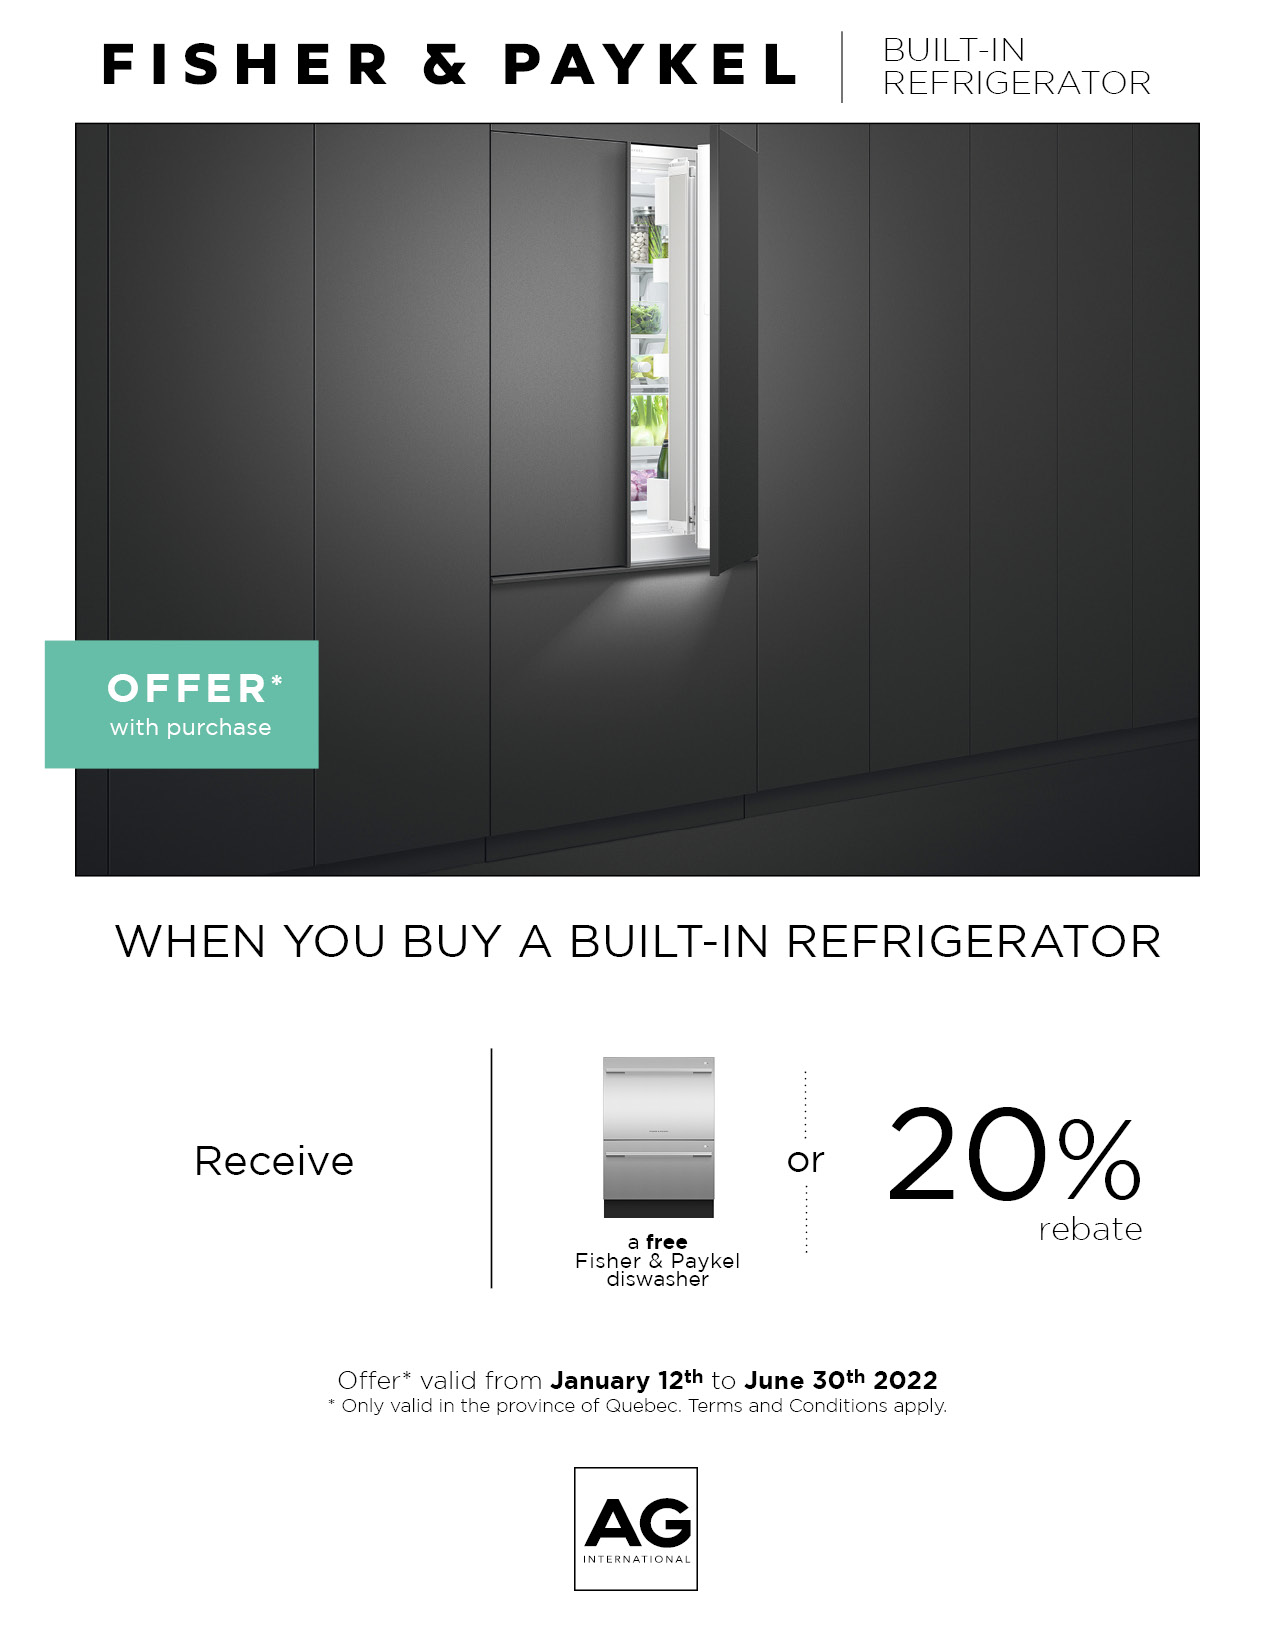 Built-in Refrigerator Promotion 1 oct-31 dec 2020